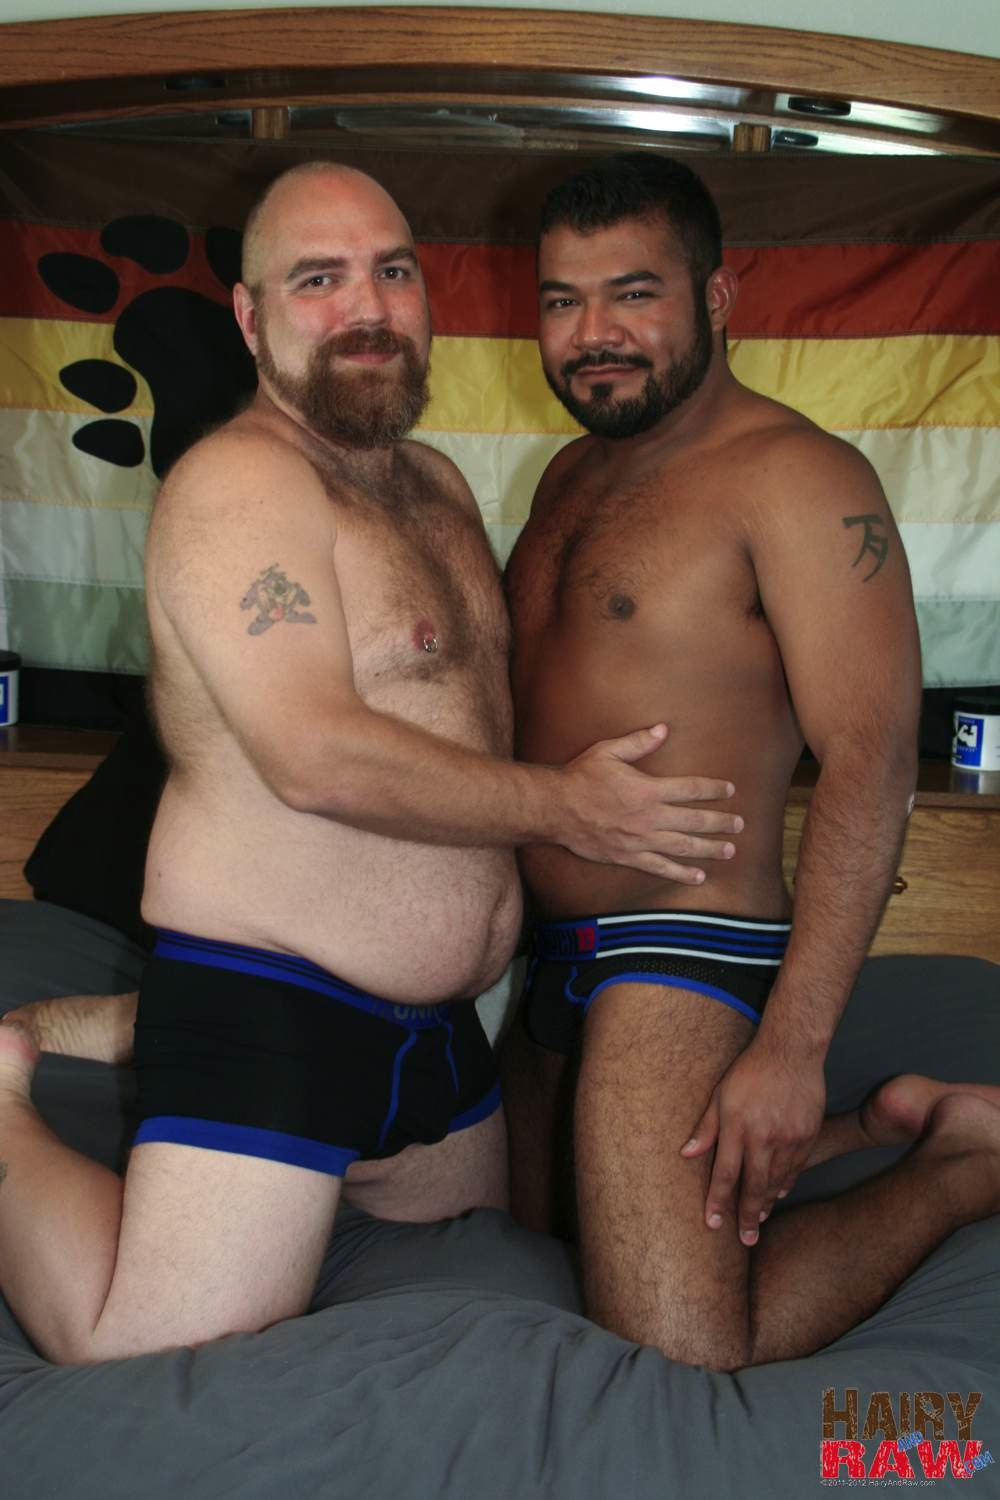 Hairy-and-Raw-DJ-Russo-and-Rico-Vega-Chubby-Bears-Barebacking-Amateur-Gay-Porn-01 Amateur Interracial Chubby Bears Barebacking Sex Pigs